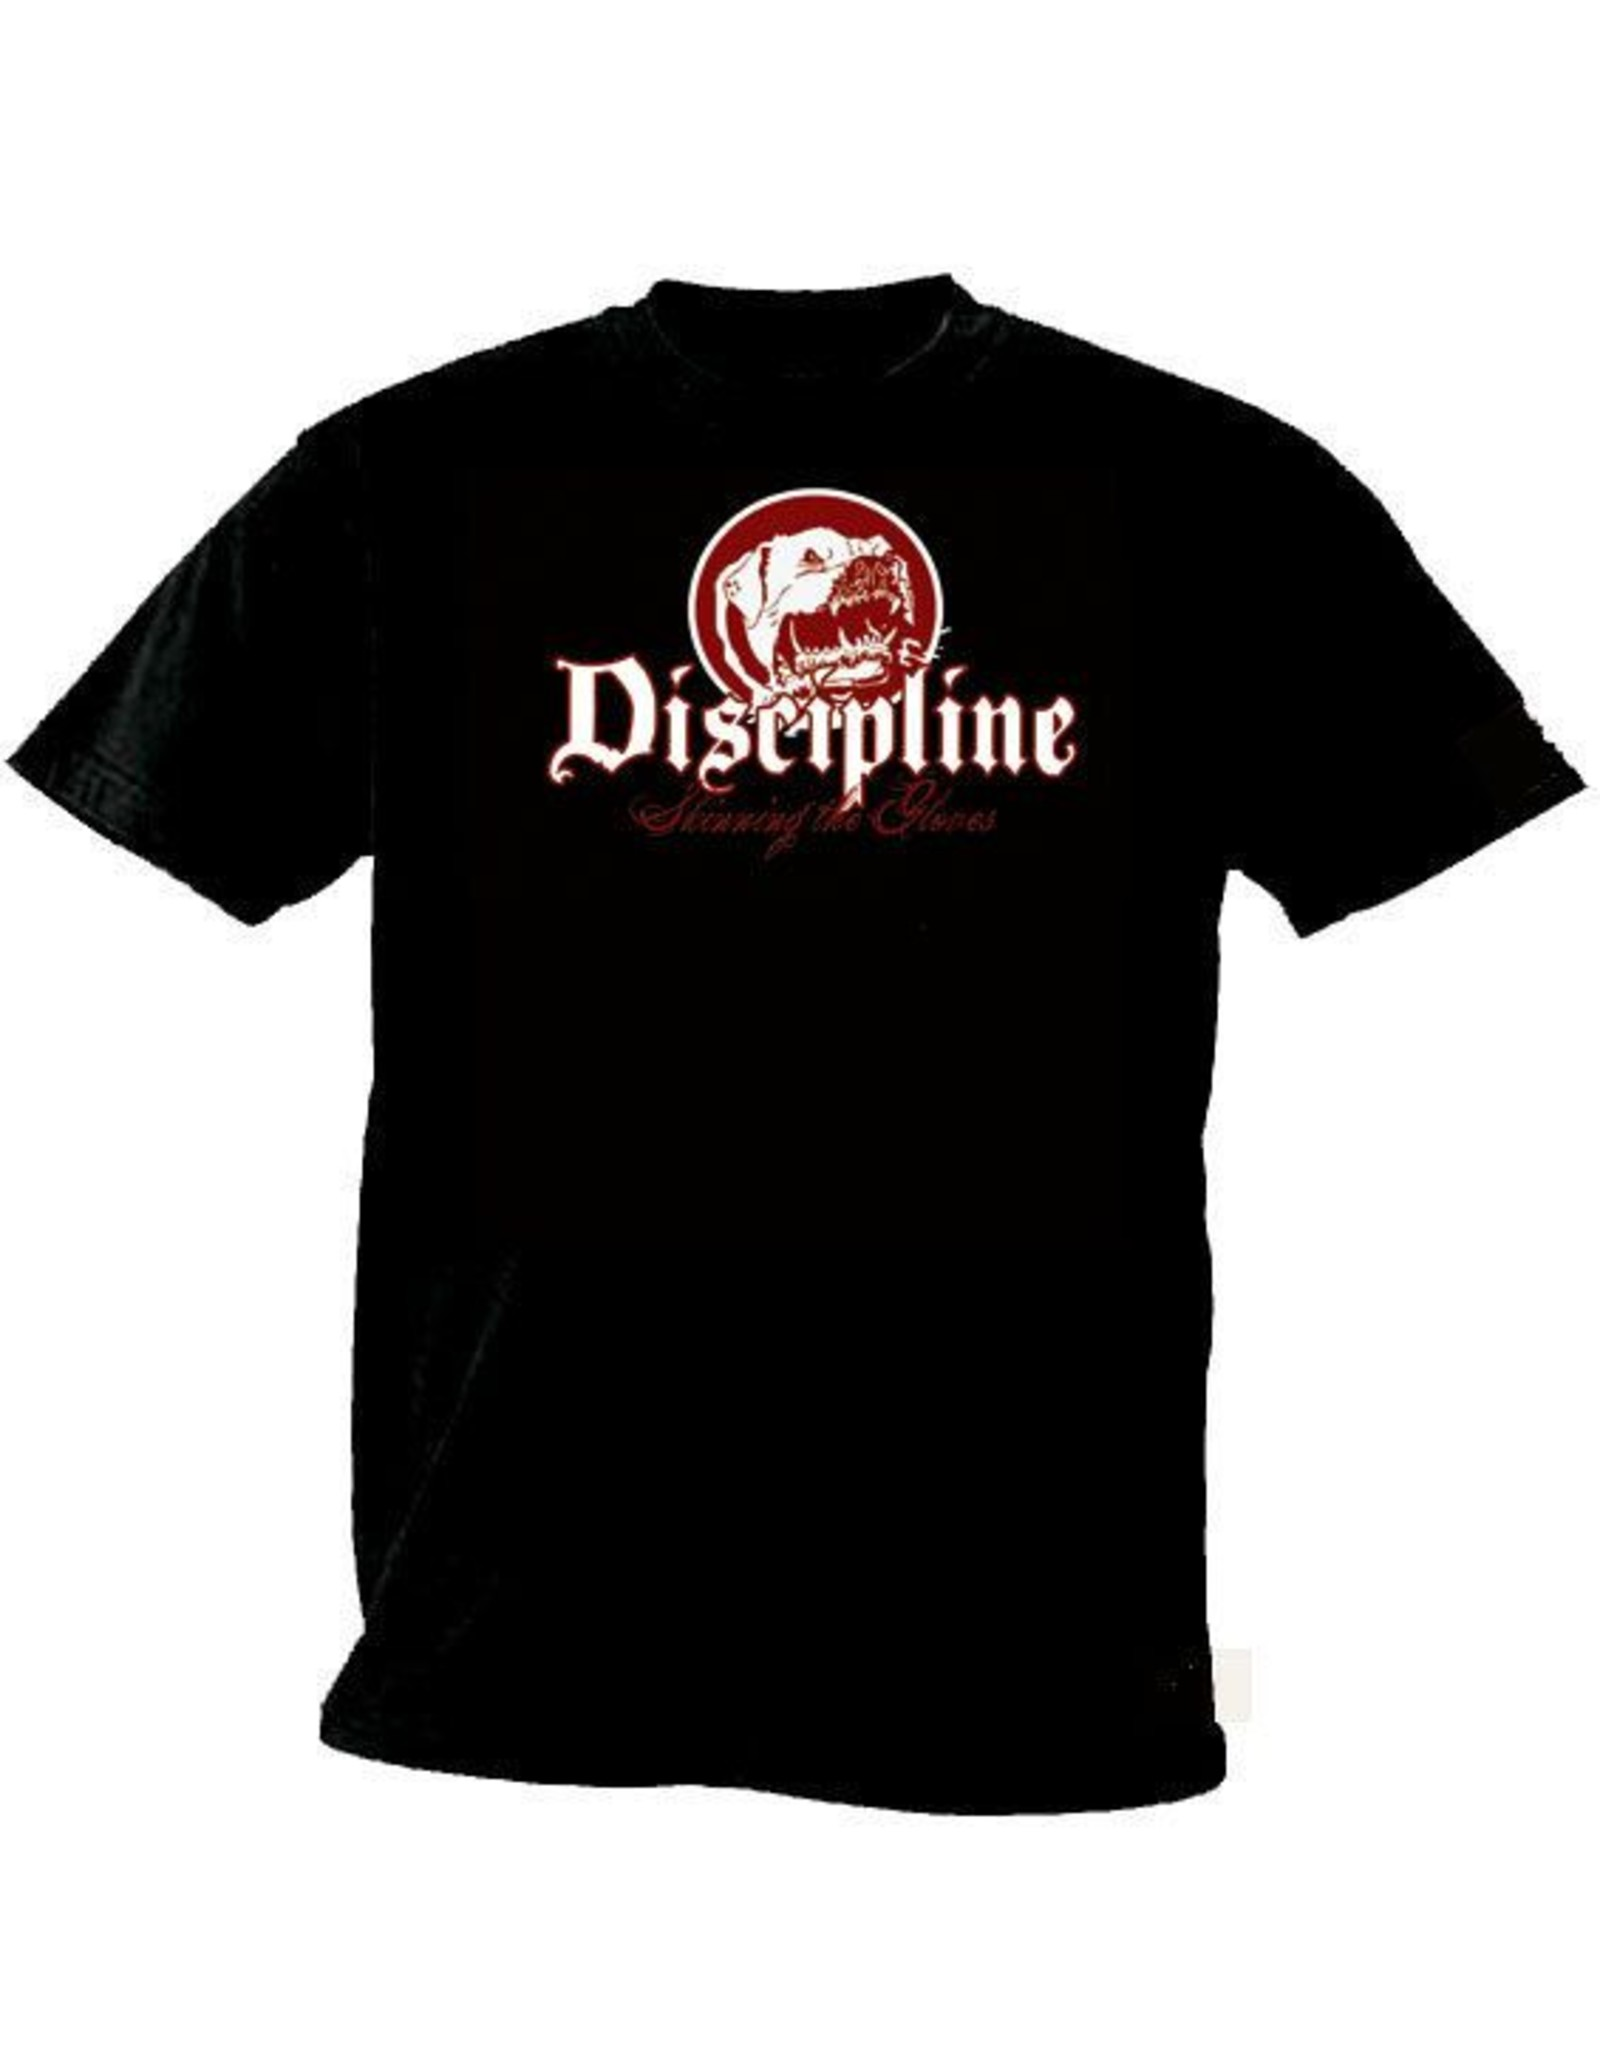 Discipline Skinning the Gloves Shirt